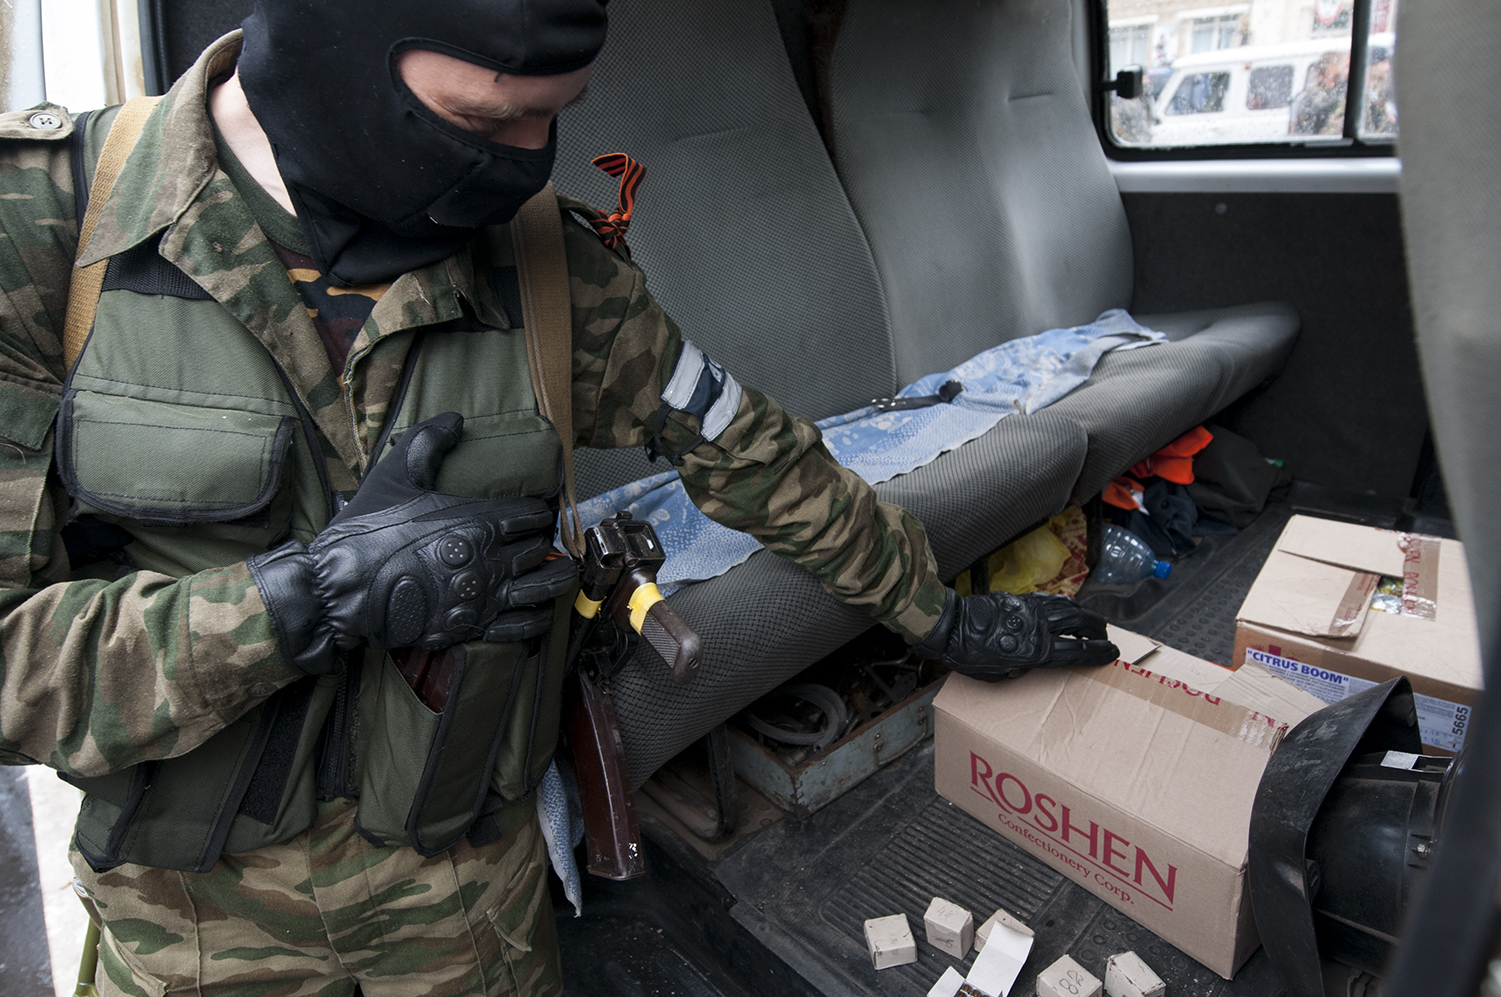 Solider showing of goods that have been stolen from a Roshen warehouse by a group of separatist the previous day